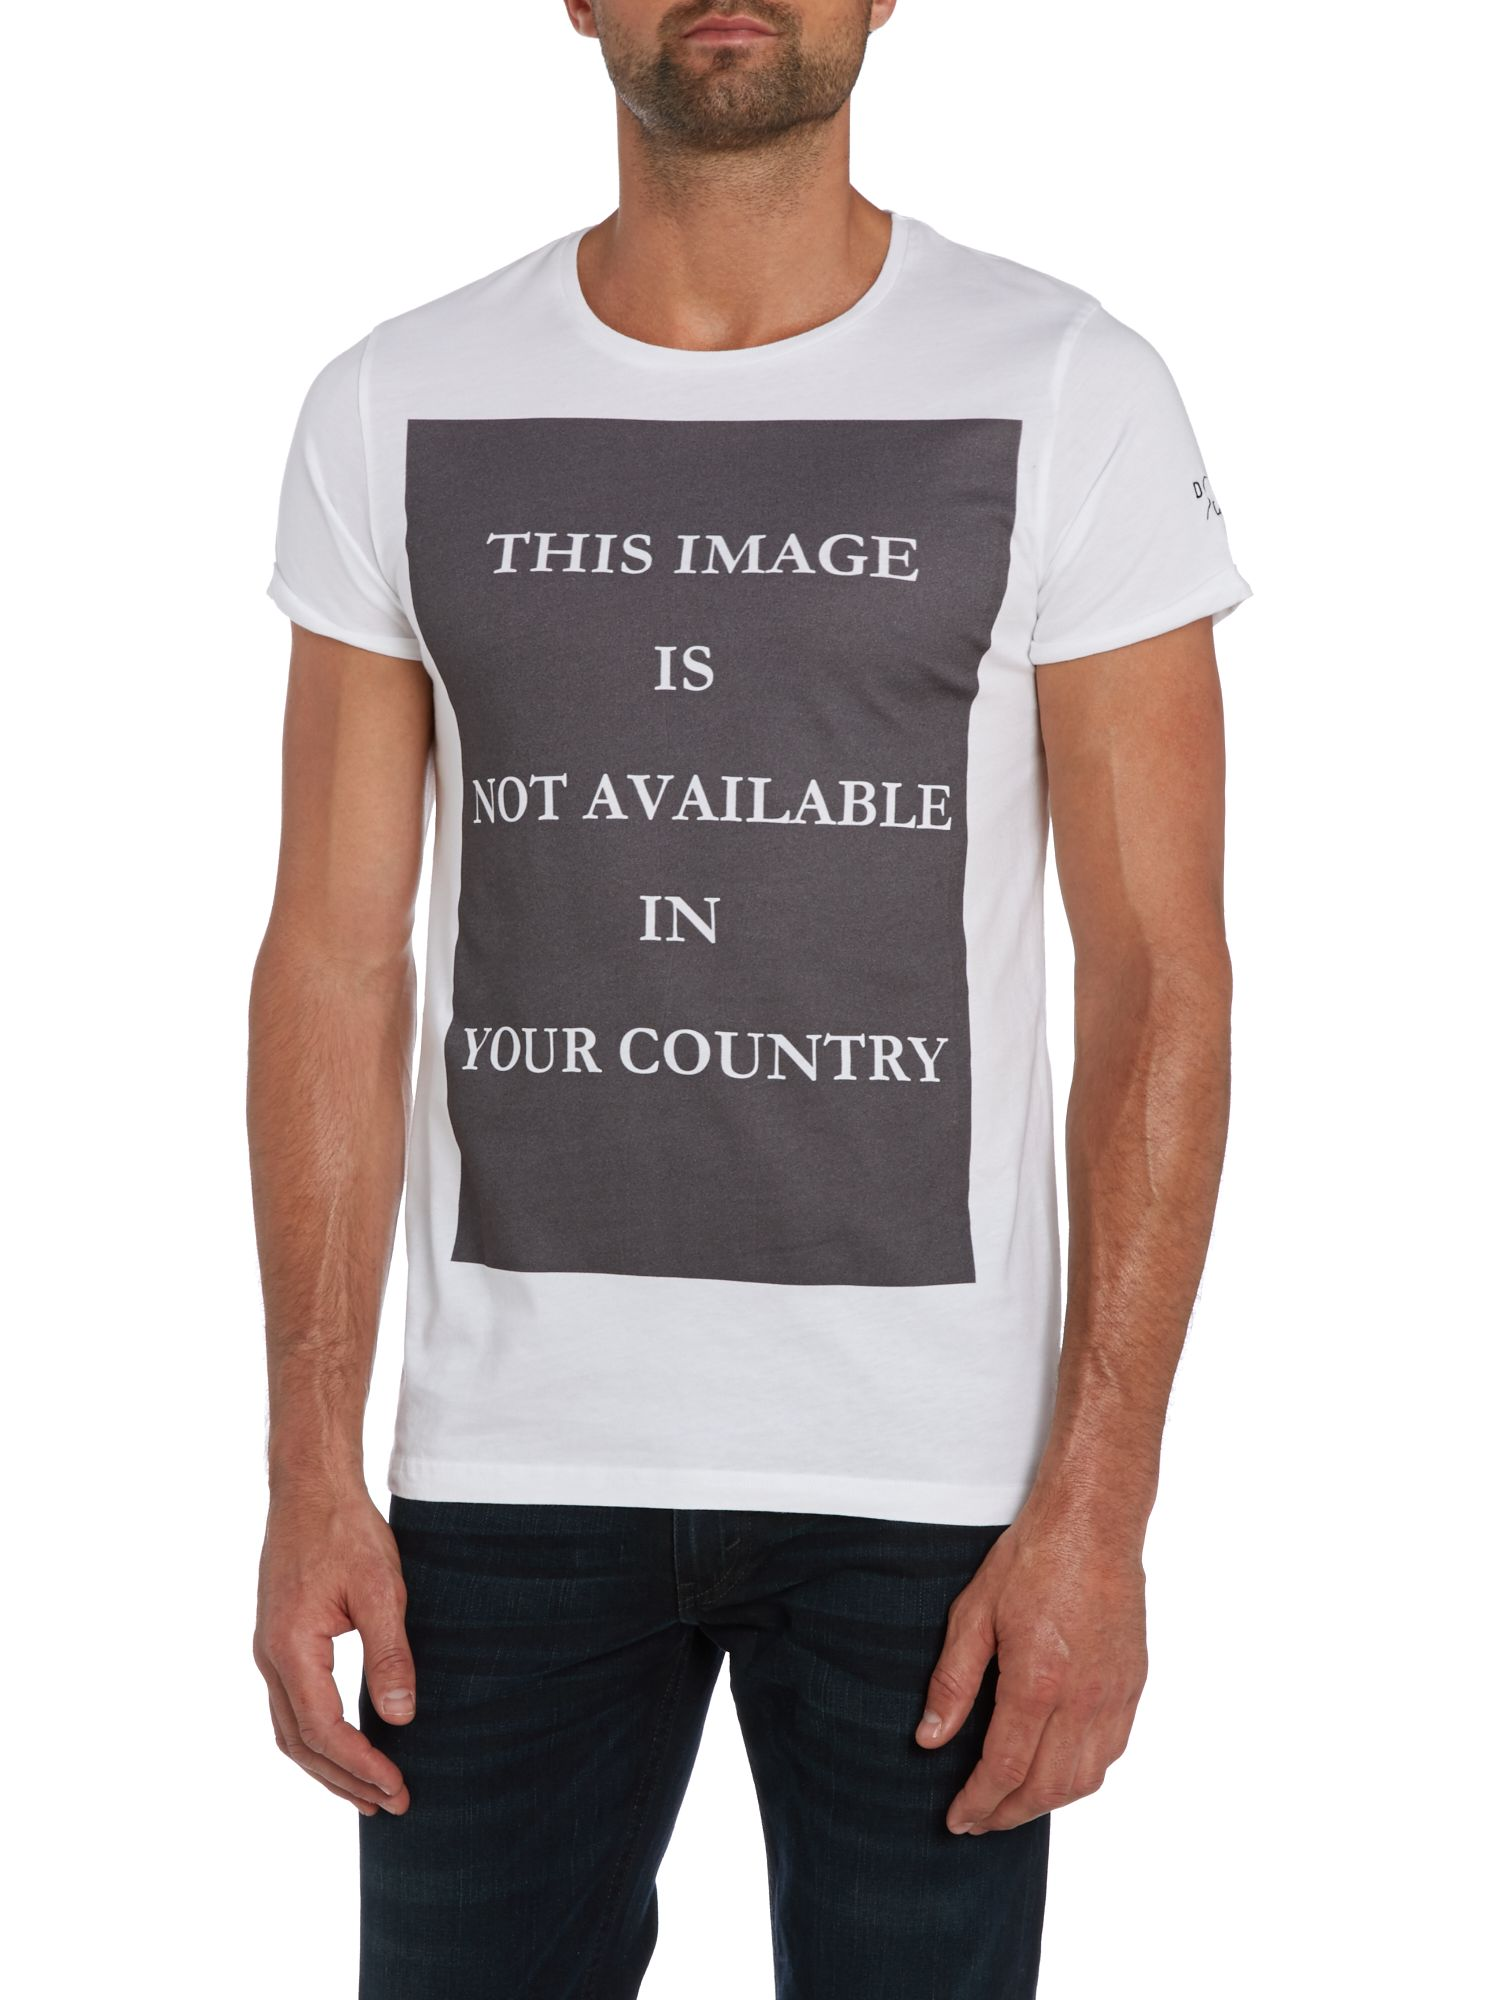 Image not available print t shirt